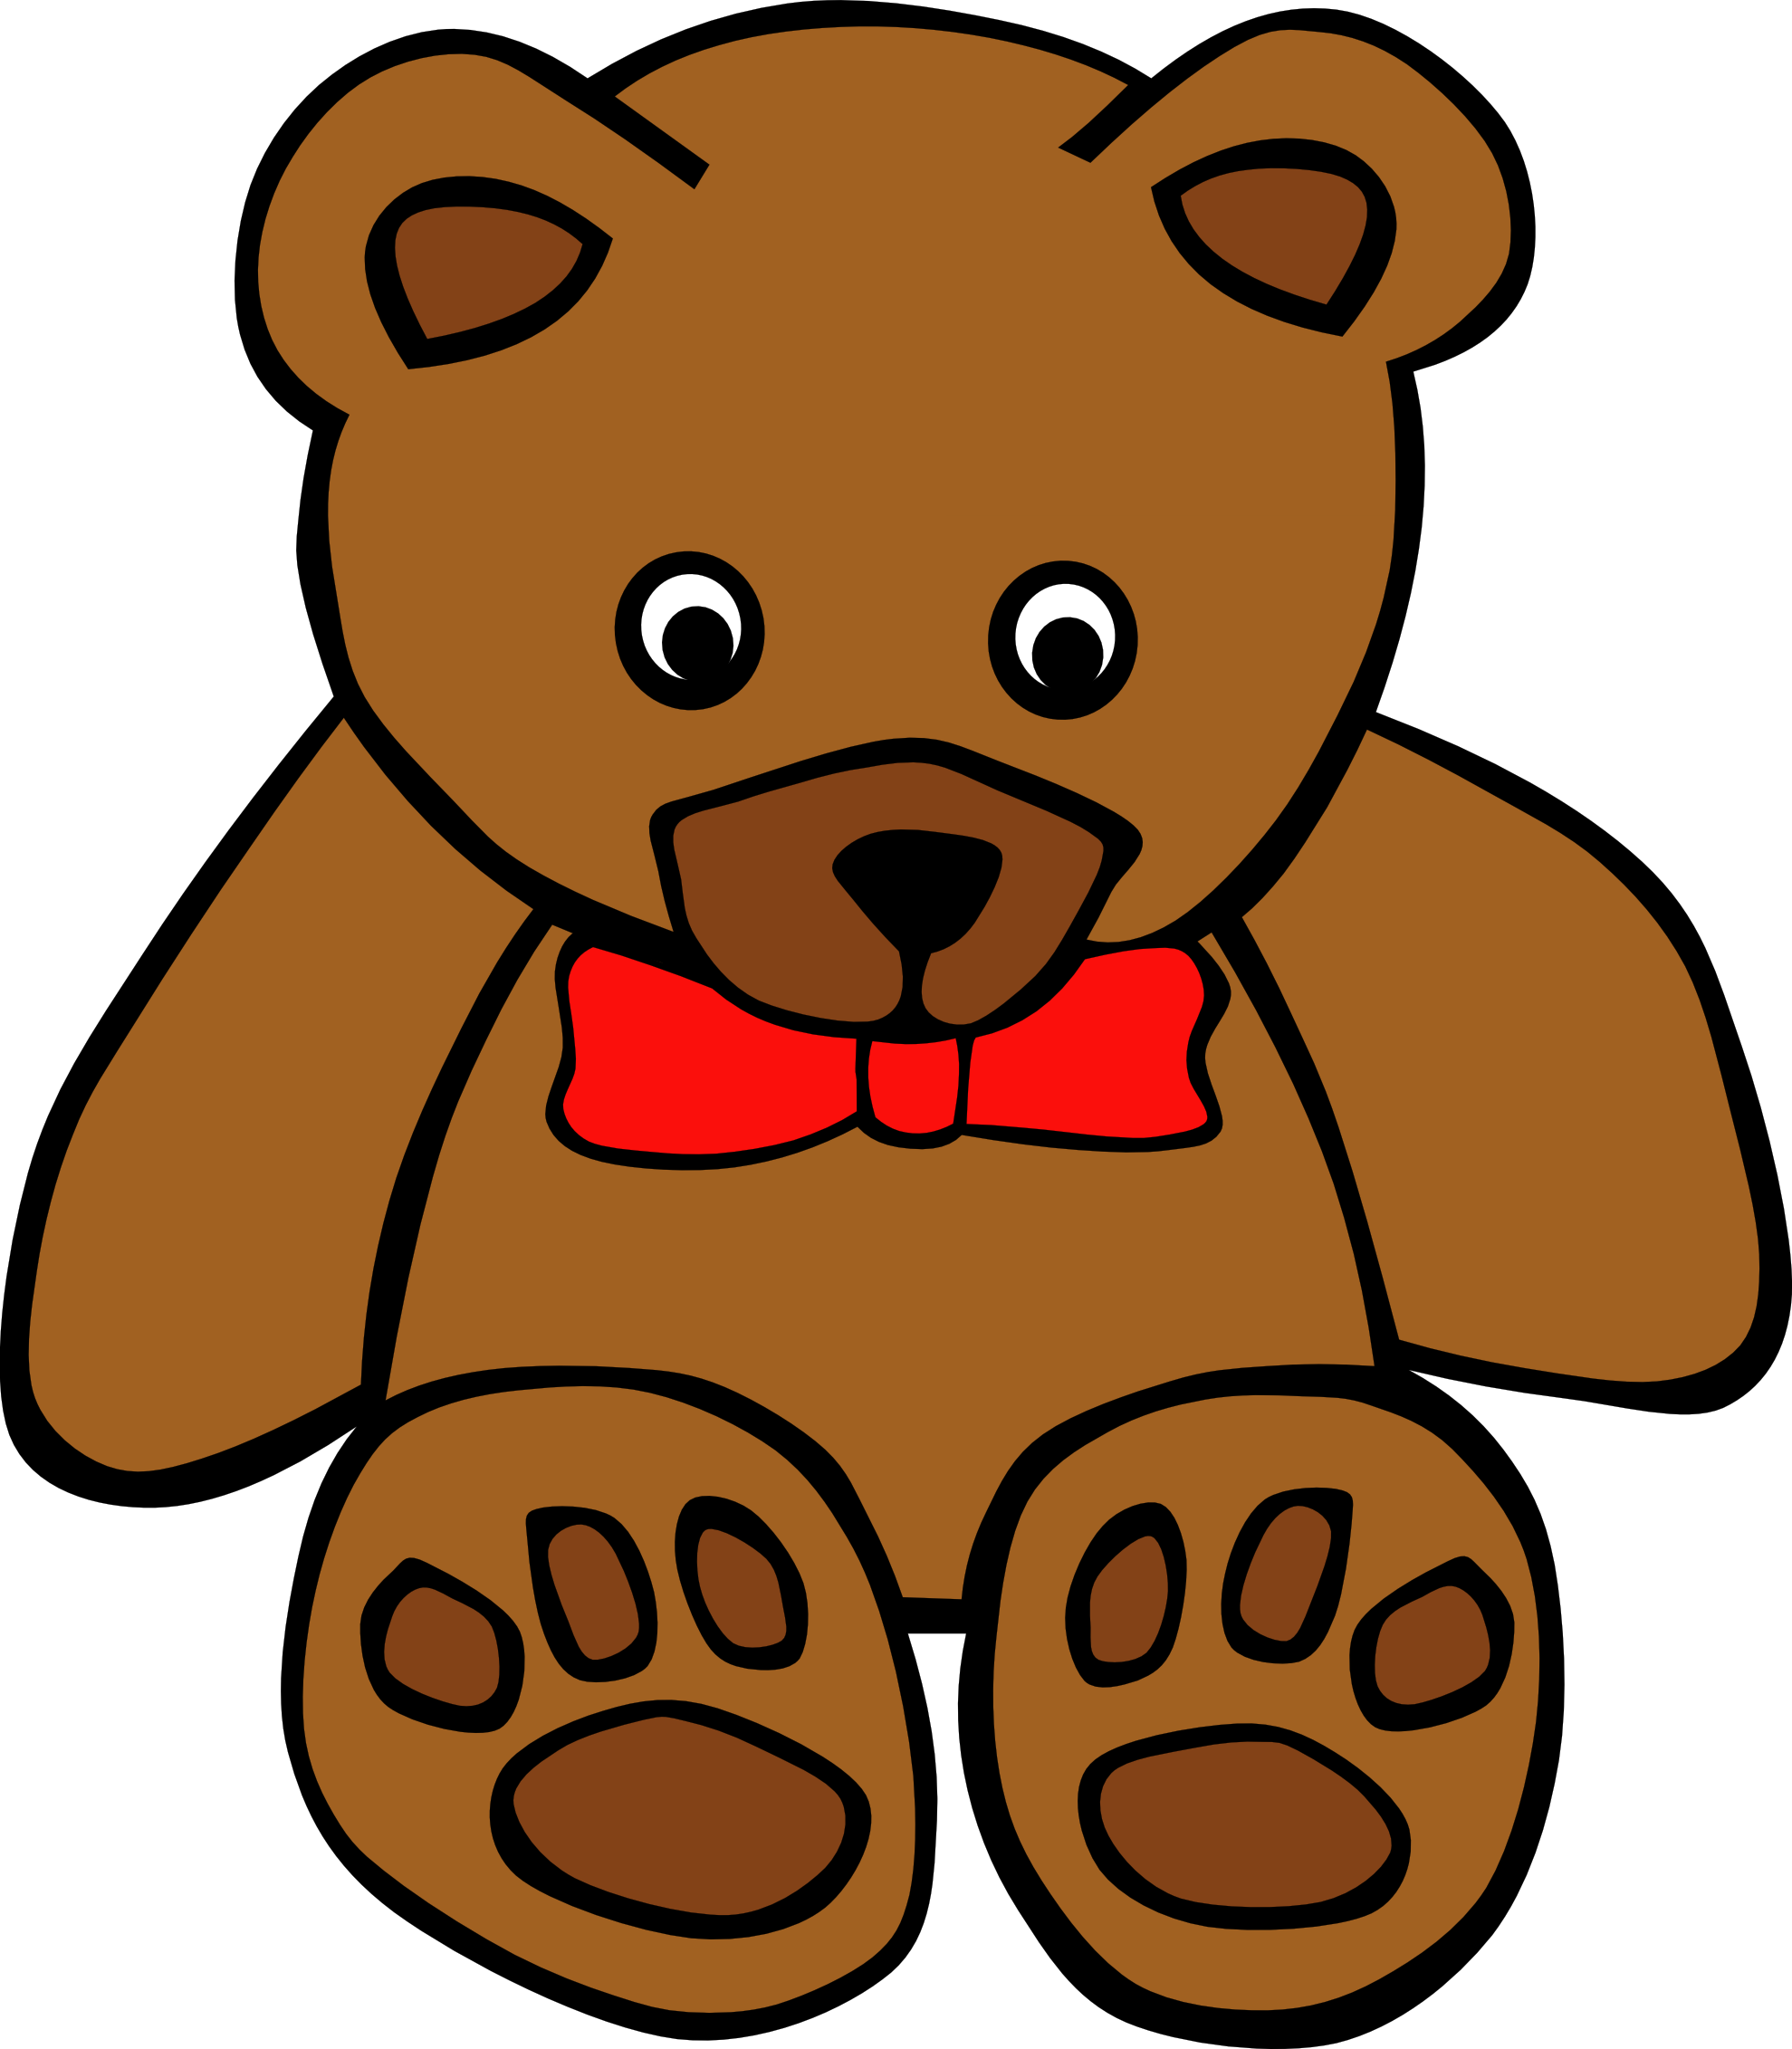 Teddy bear clipart free clipa - Teddy Bear Clip Art Free